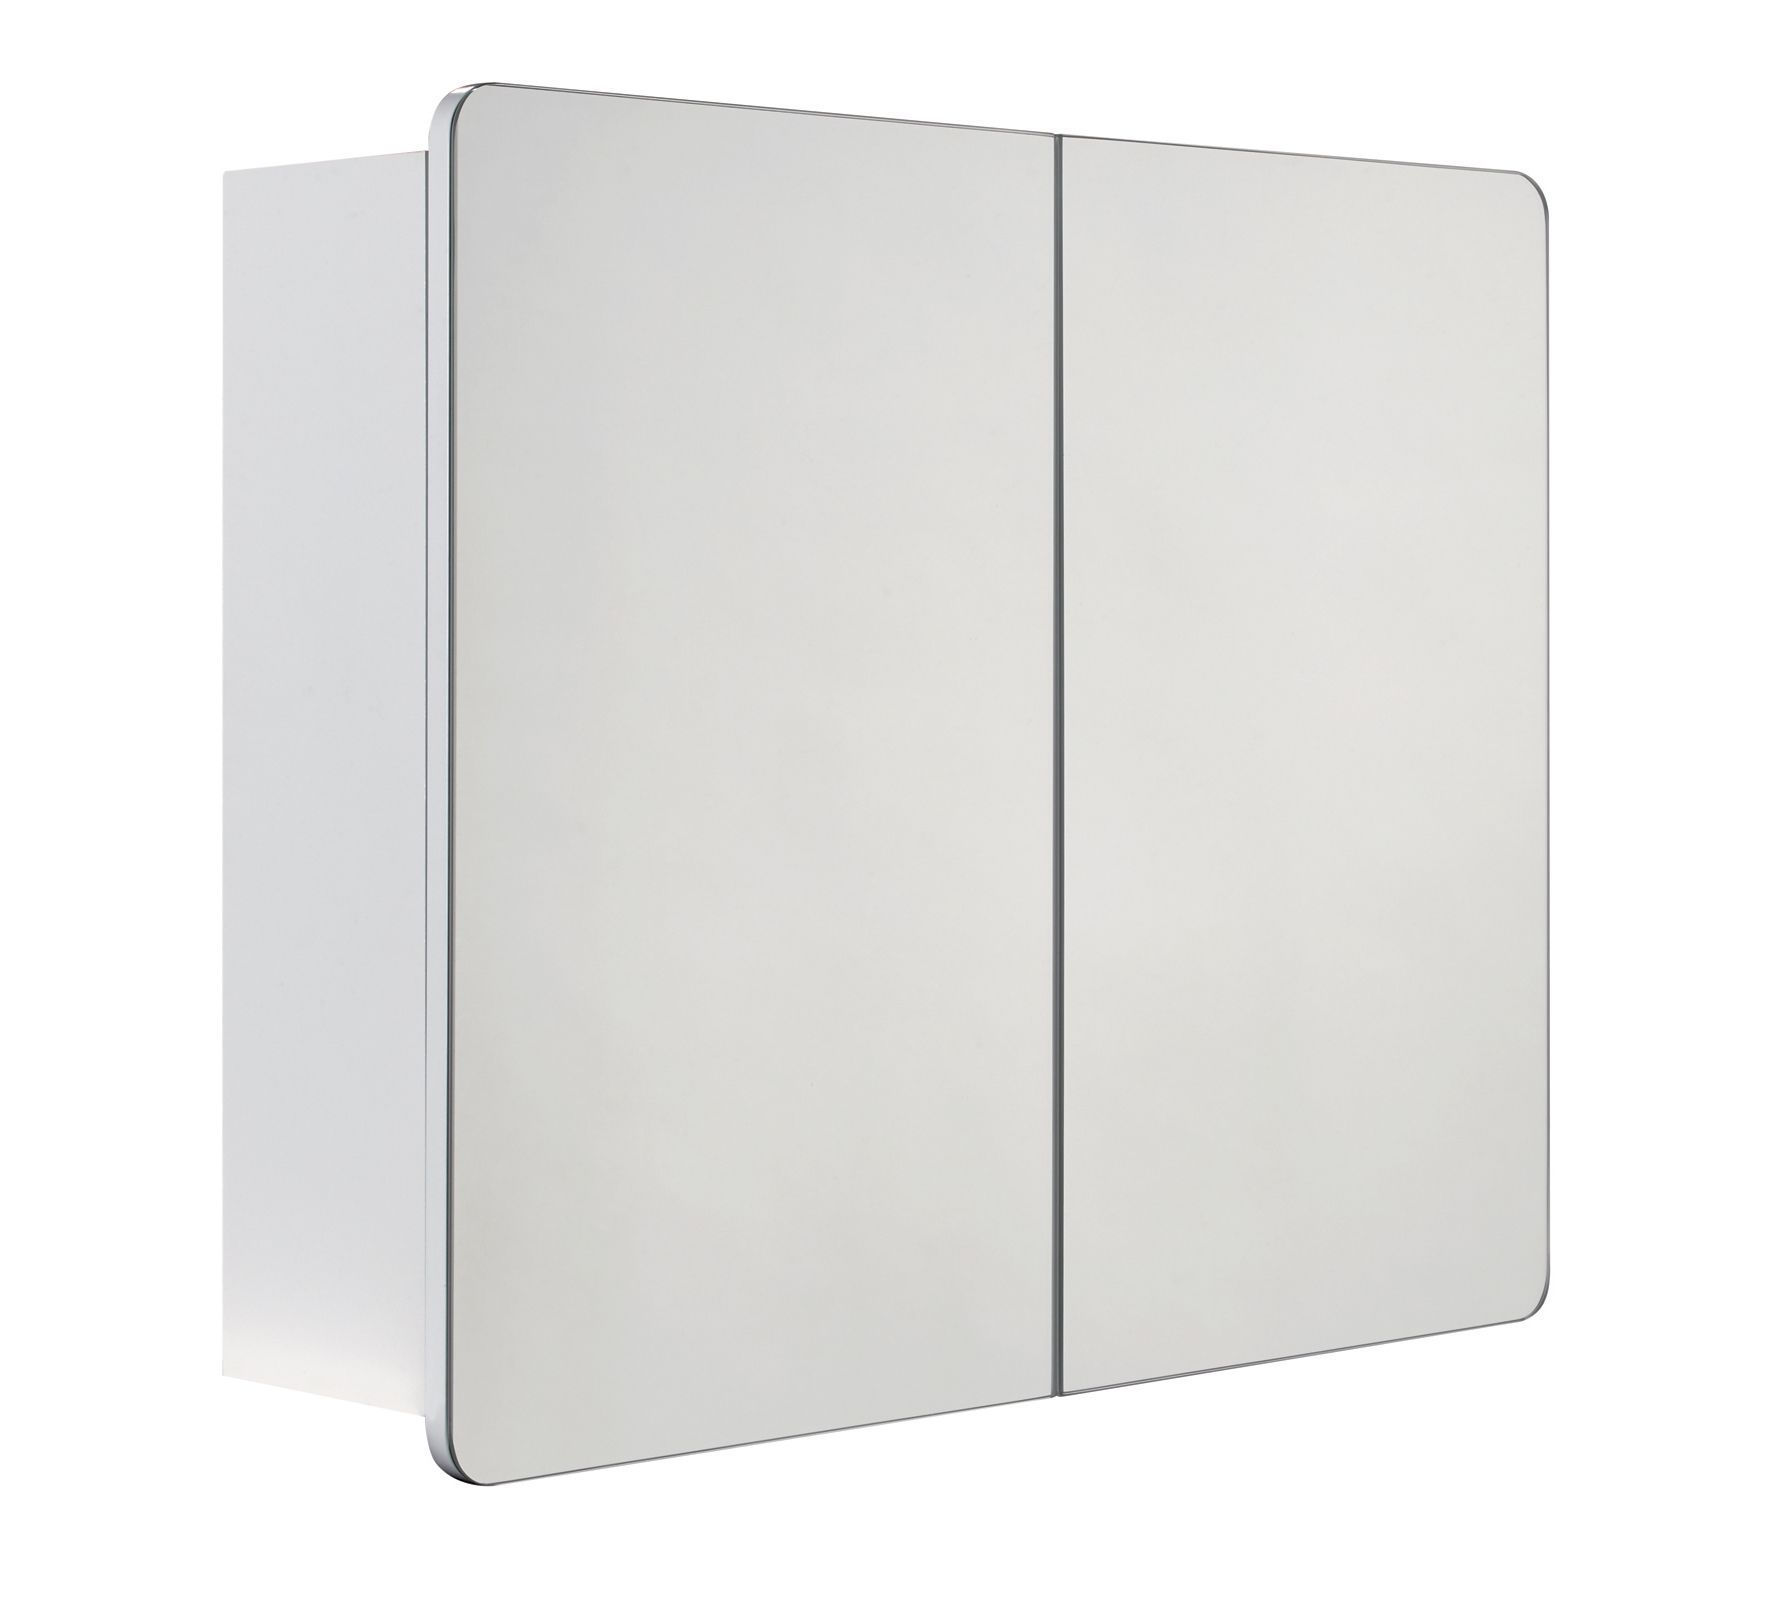 Cooke U0026 Lewis Lesina Double Door White Mirror Cabinet | Departments | DIY  At Bu0026Q